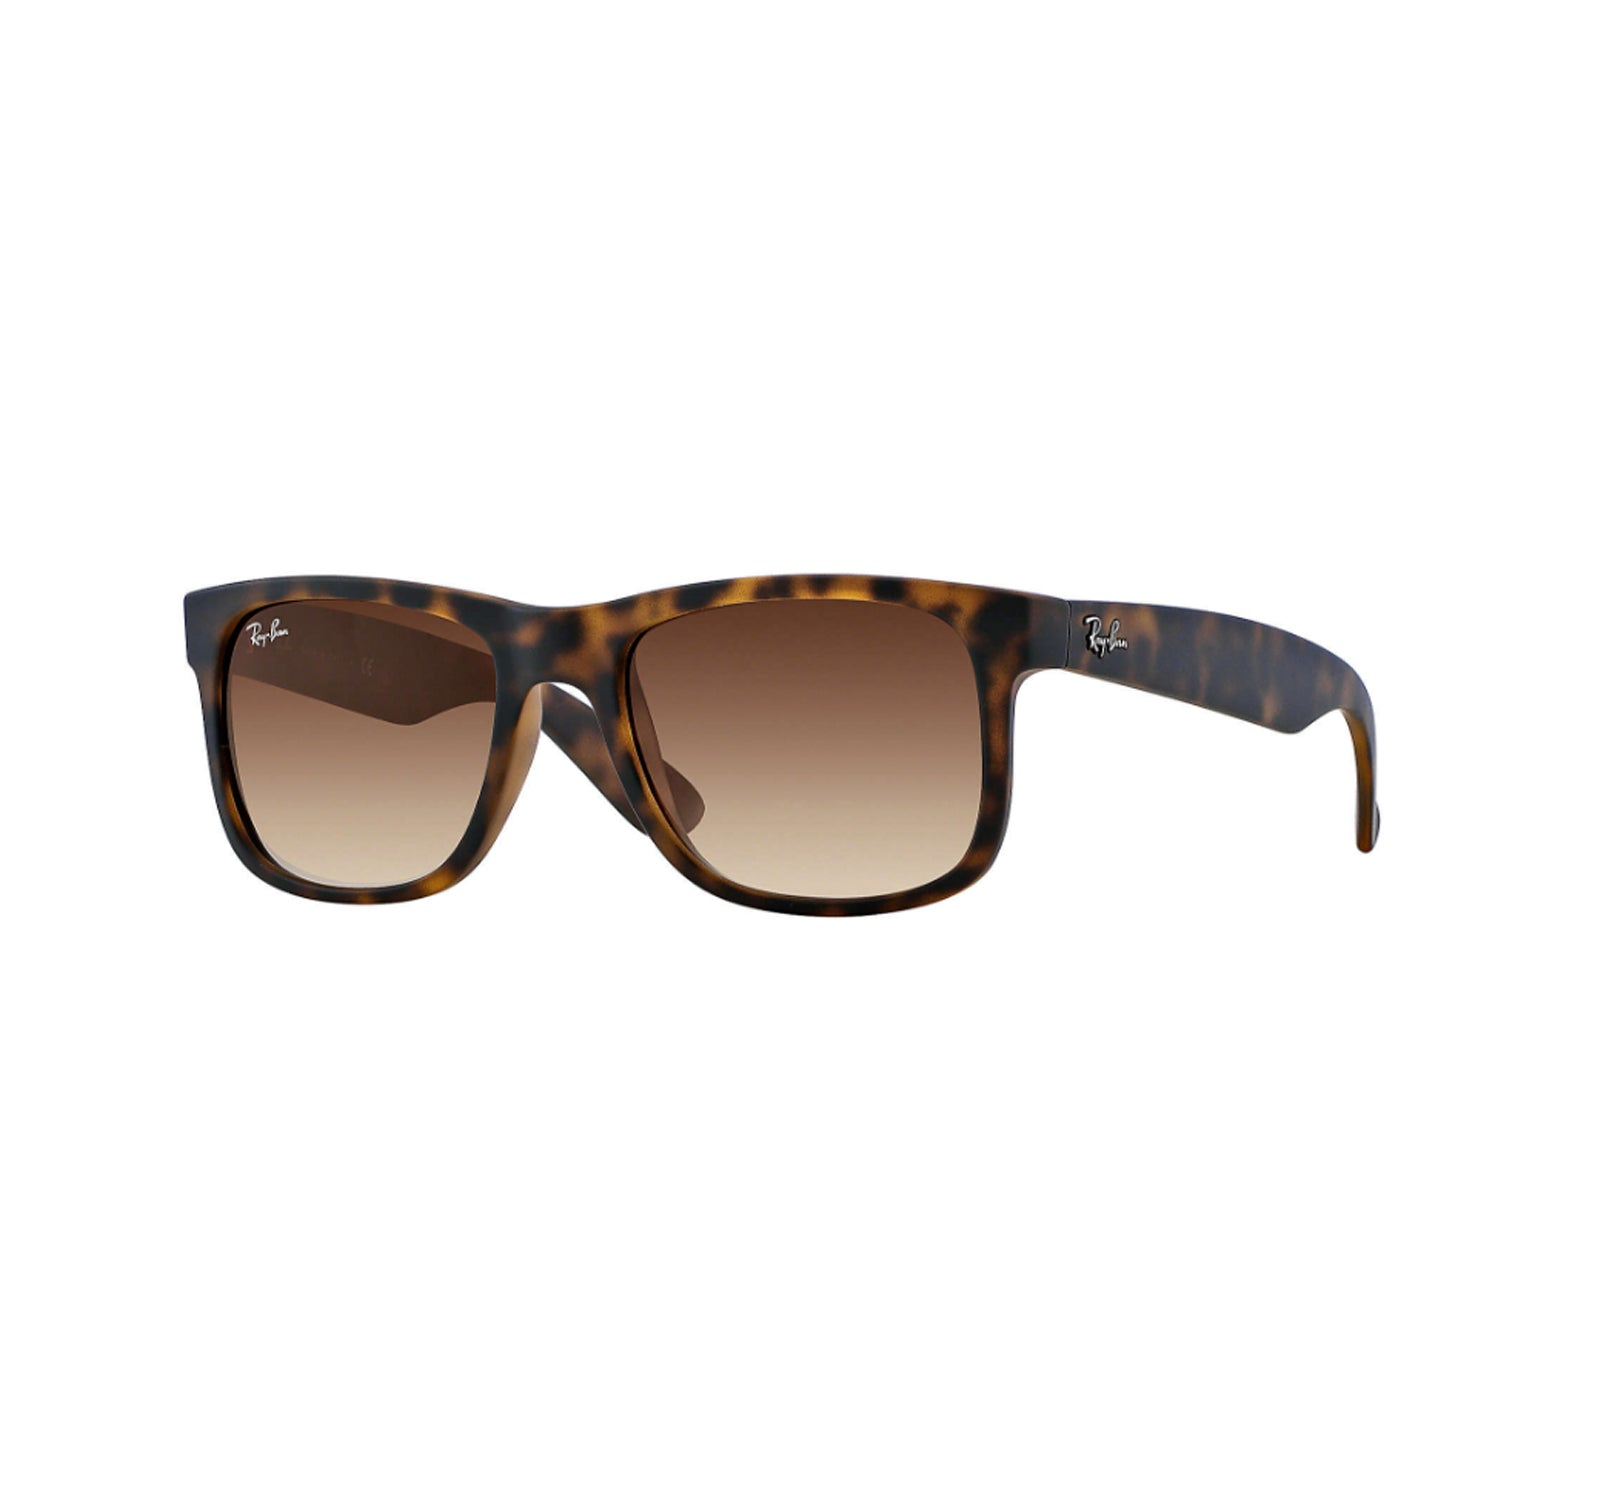 e6ccf13d953 Ray-Ban Justin Men s Sunglasses - Rubber Tortoise Frame Brown Gradient - Surf  Station Store